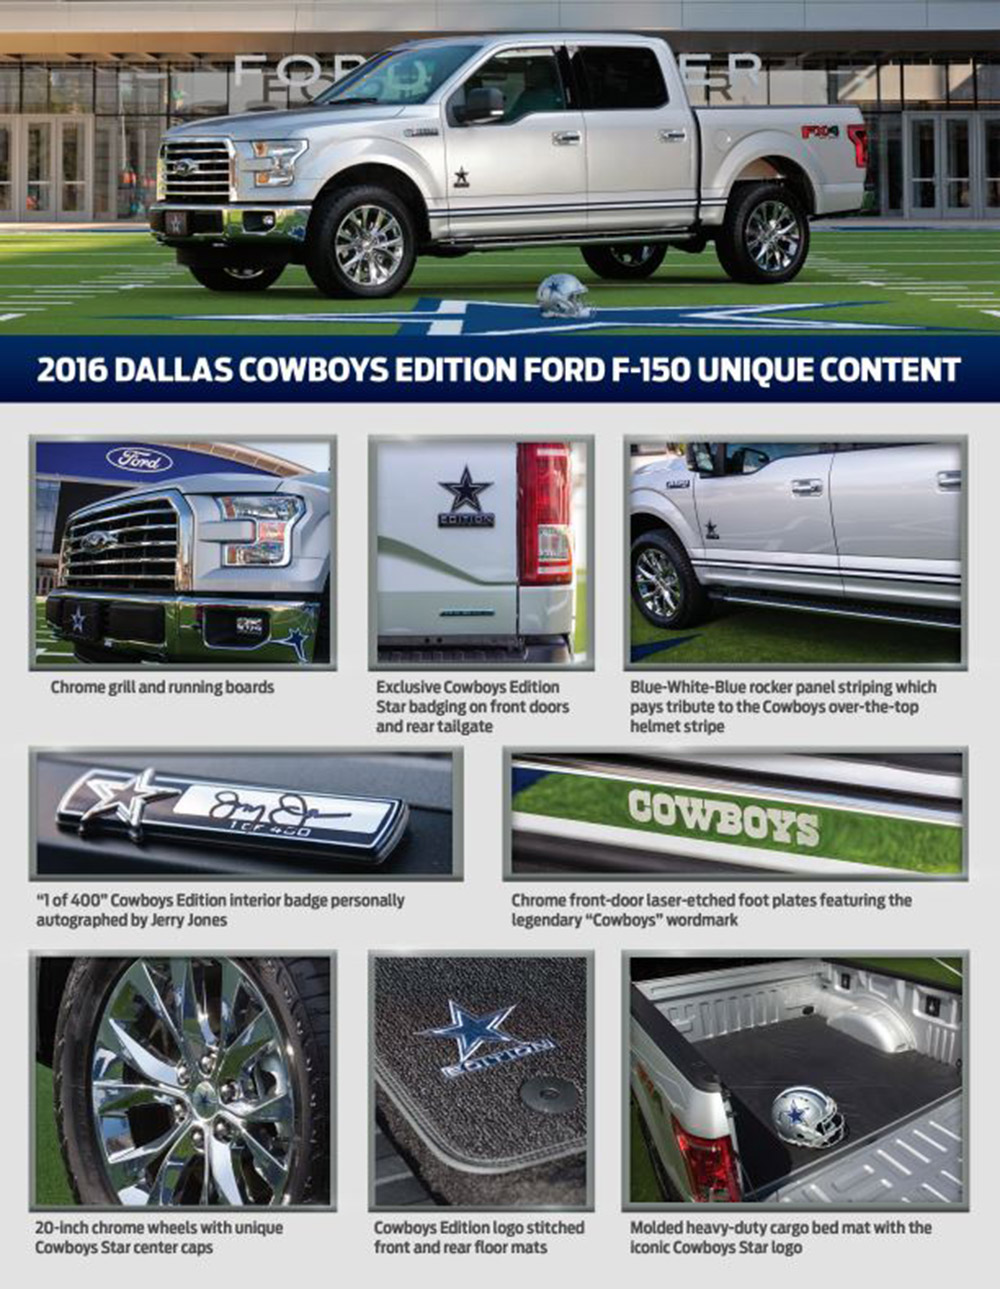 Ford F-150 Dallas Cowboys Edition Fact Sheet